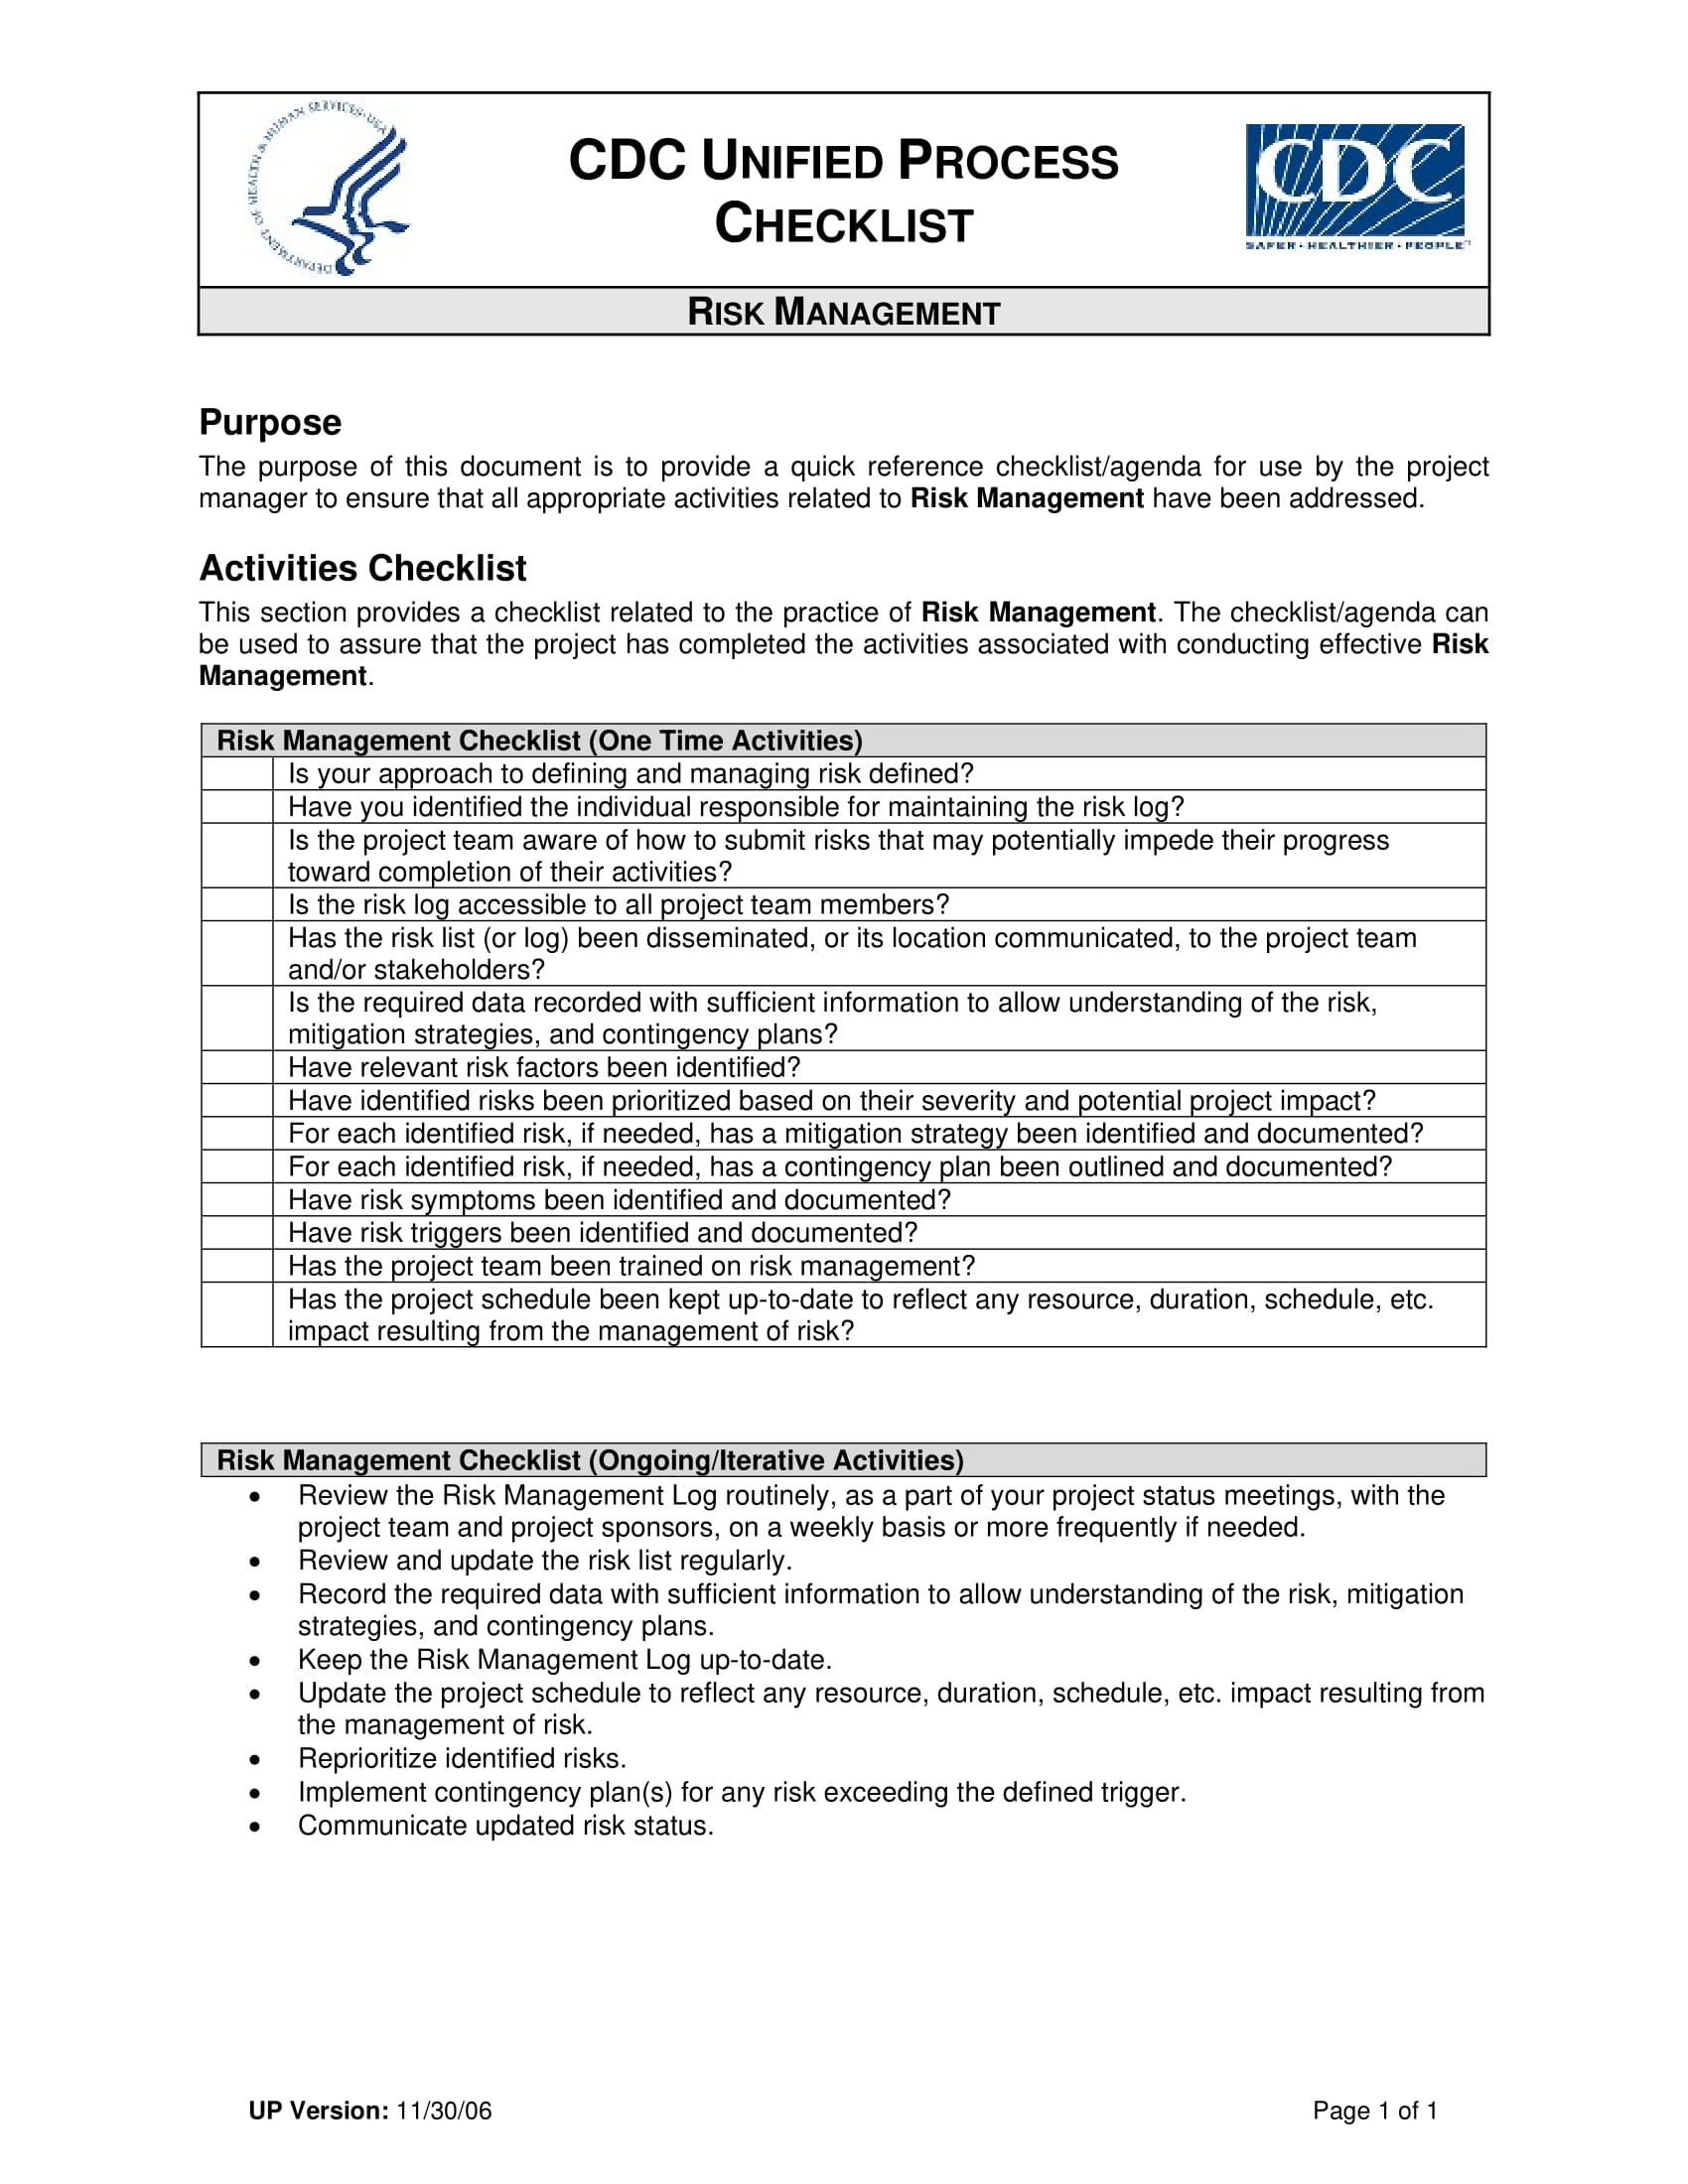 risk management checklist